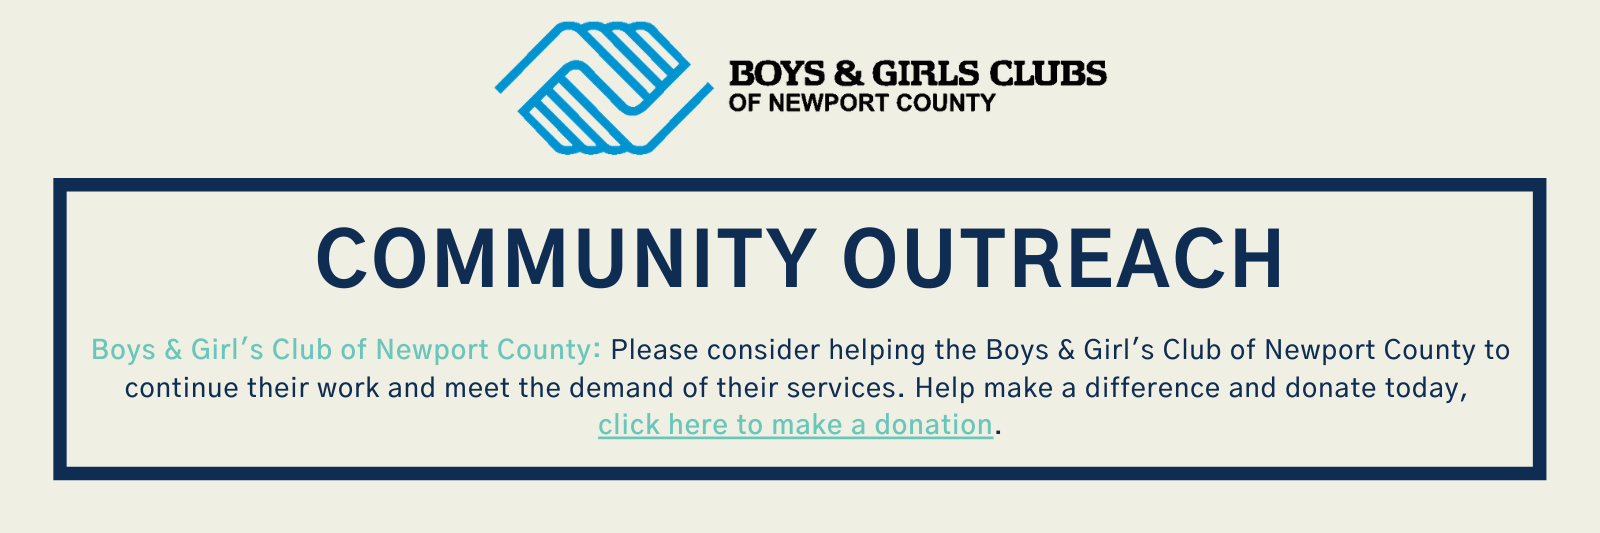 Boys & Girl's Club of Newport County